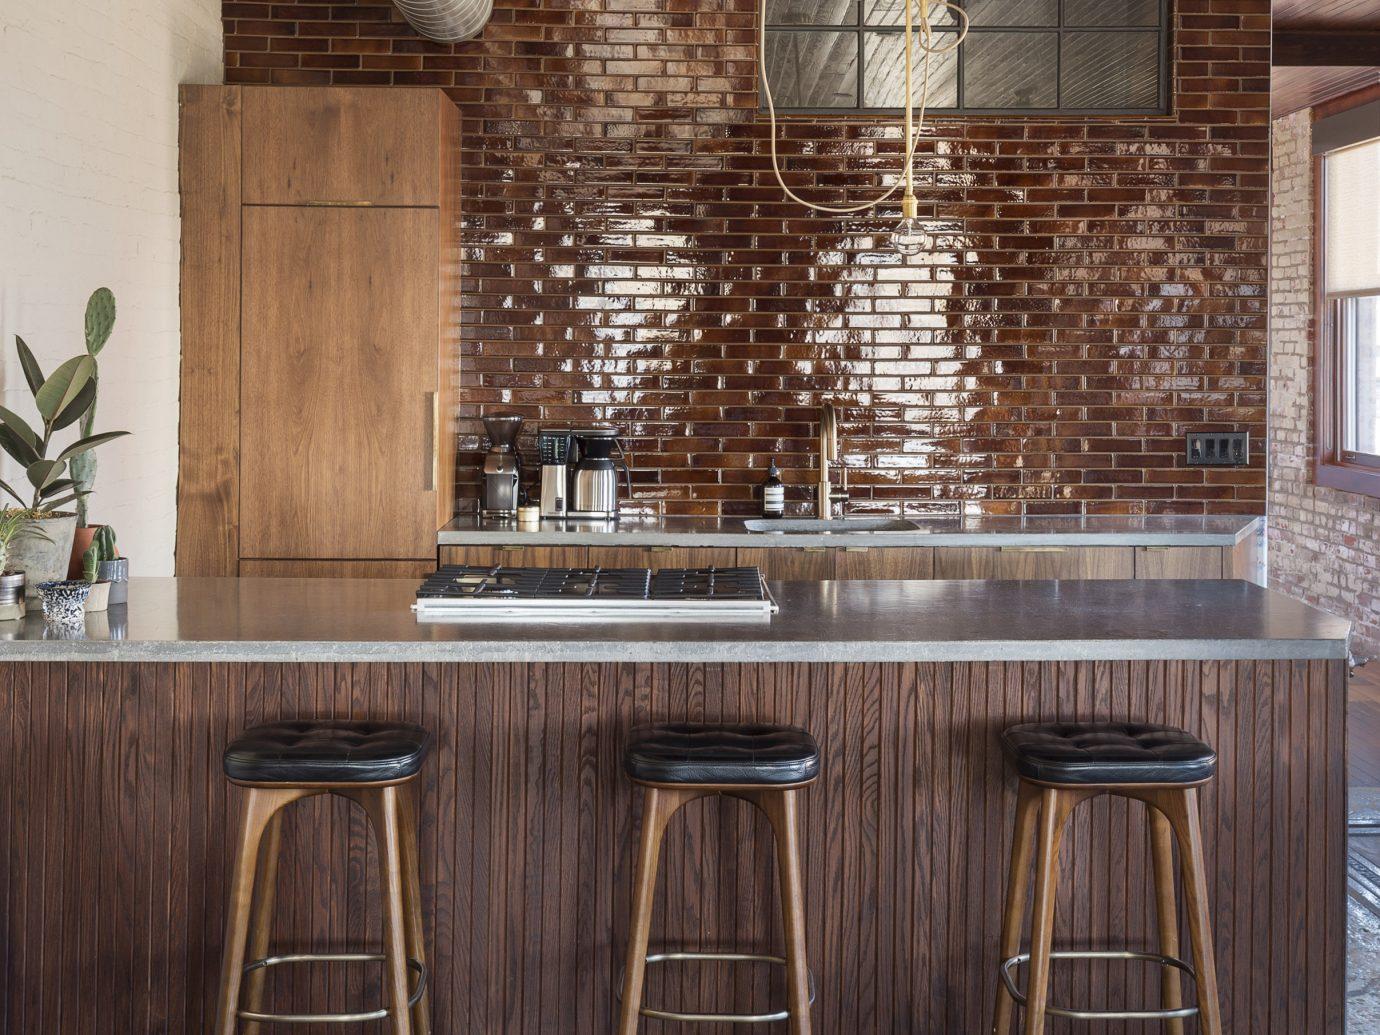 Boutique Hotels Hotels Philadelphia wooden chair dining room man made object room wood furniture hardwood floor table home interior design cottage estate farmhouse